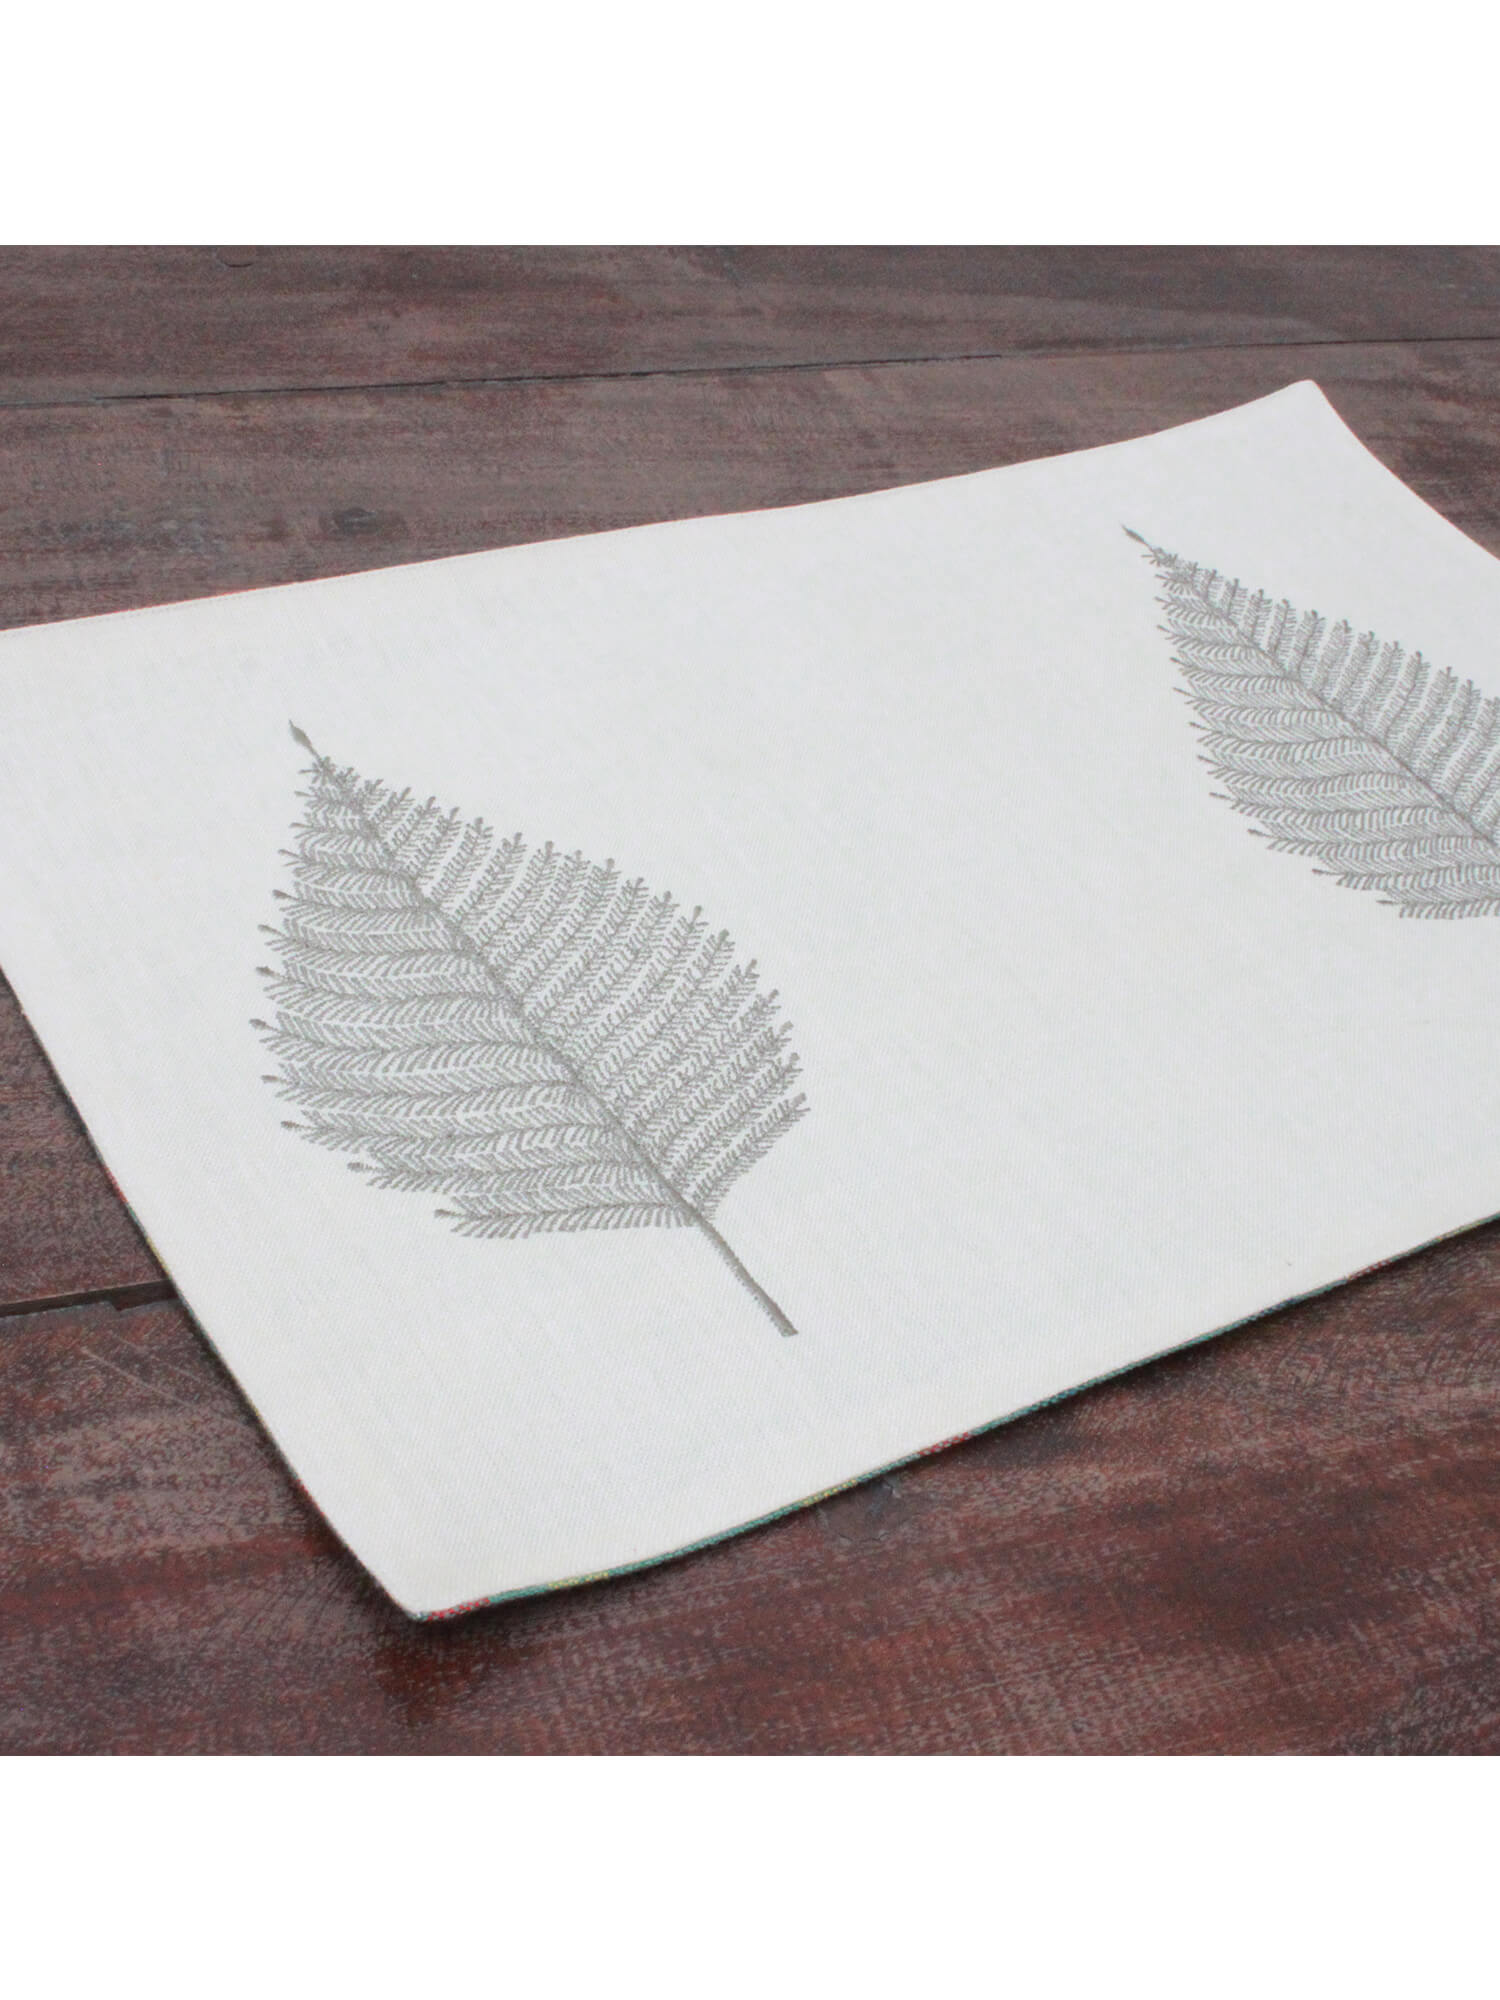 MAT | LINEN WHITE FERN LEAF